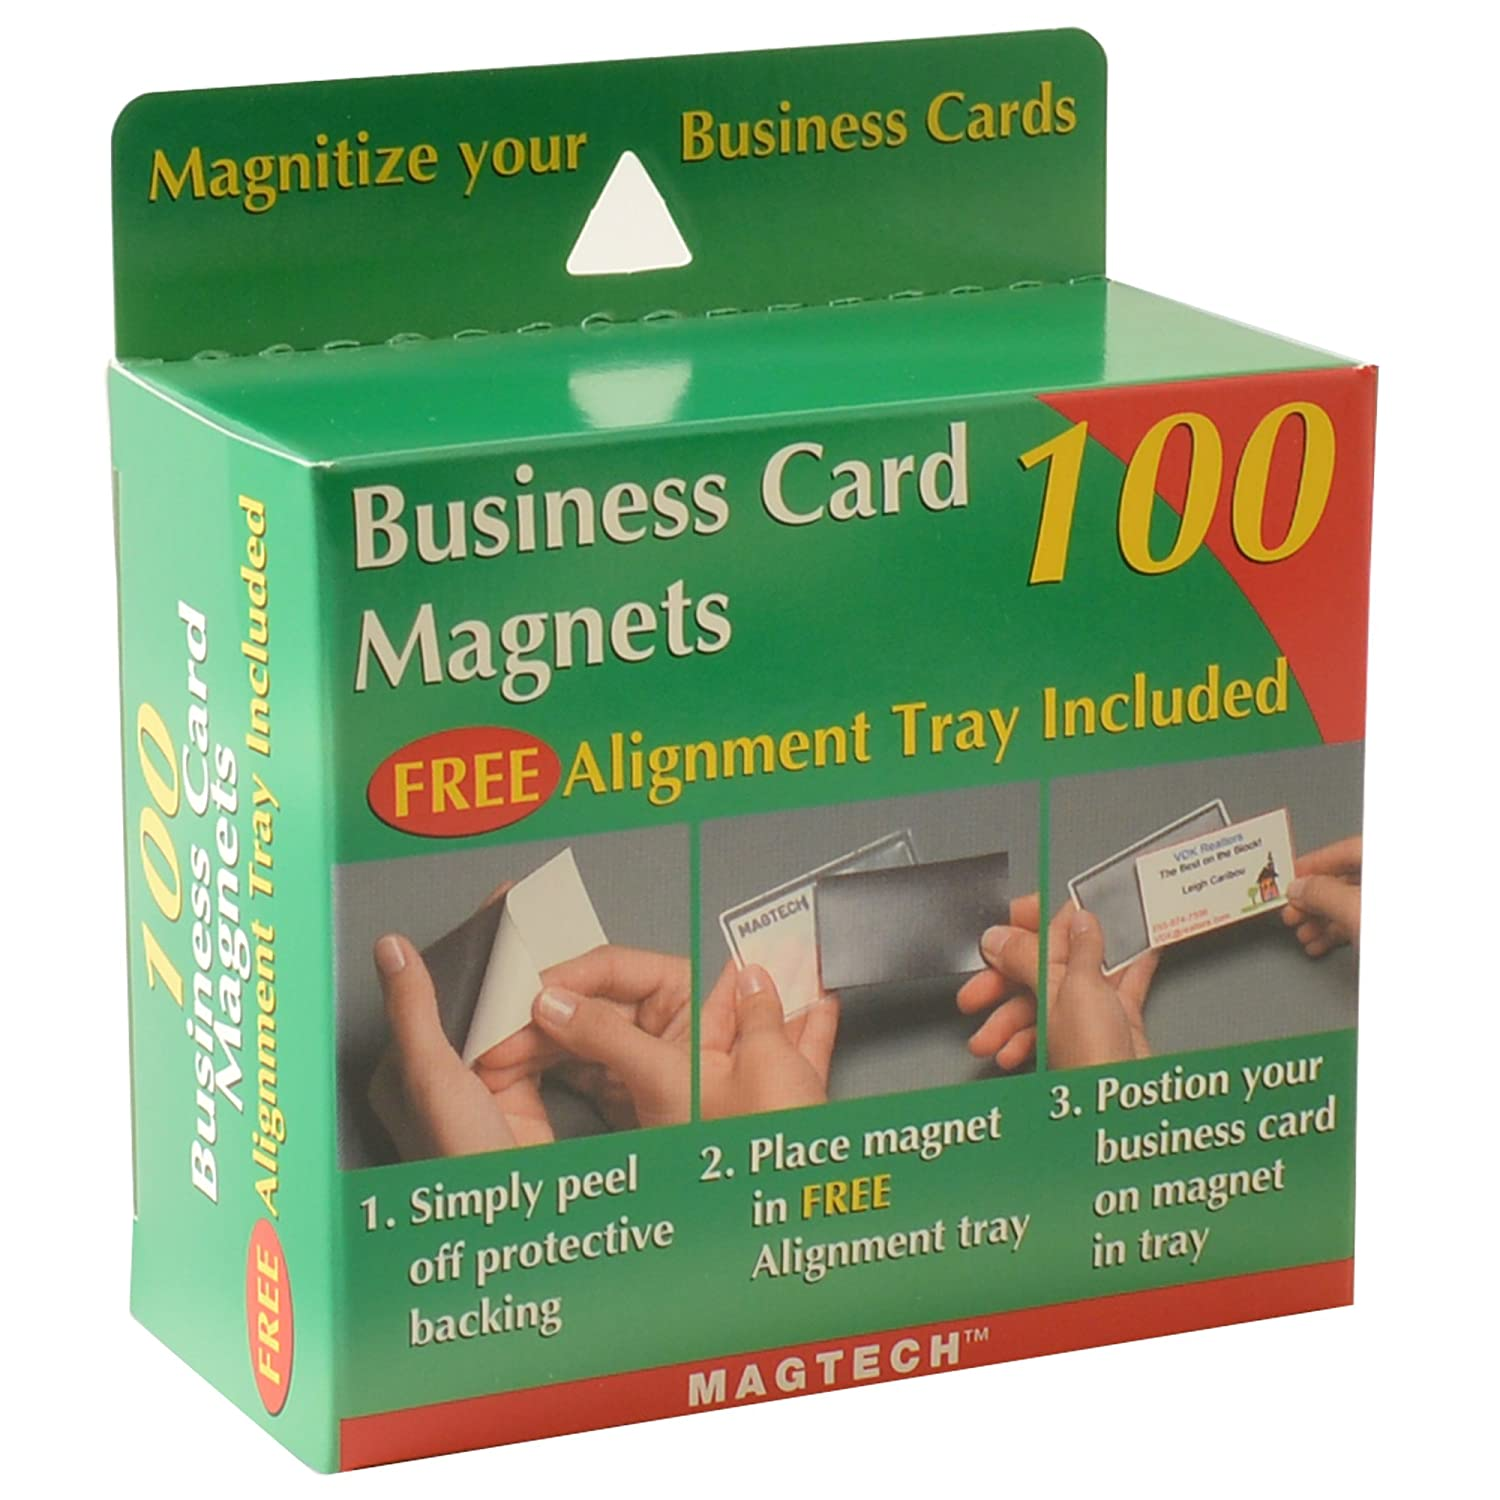 magtech business card magnets with alignment tray